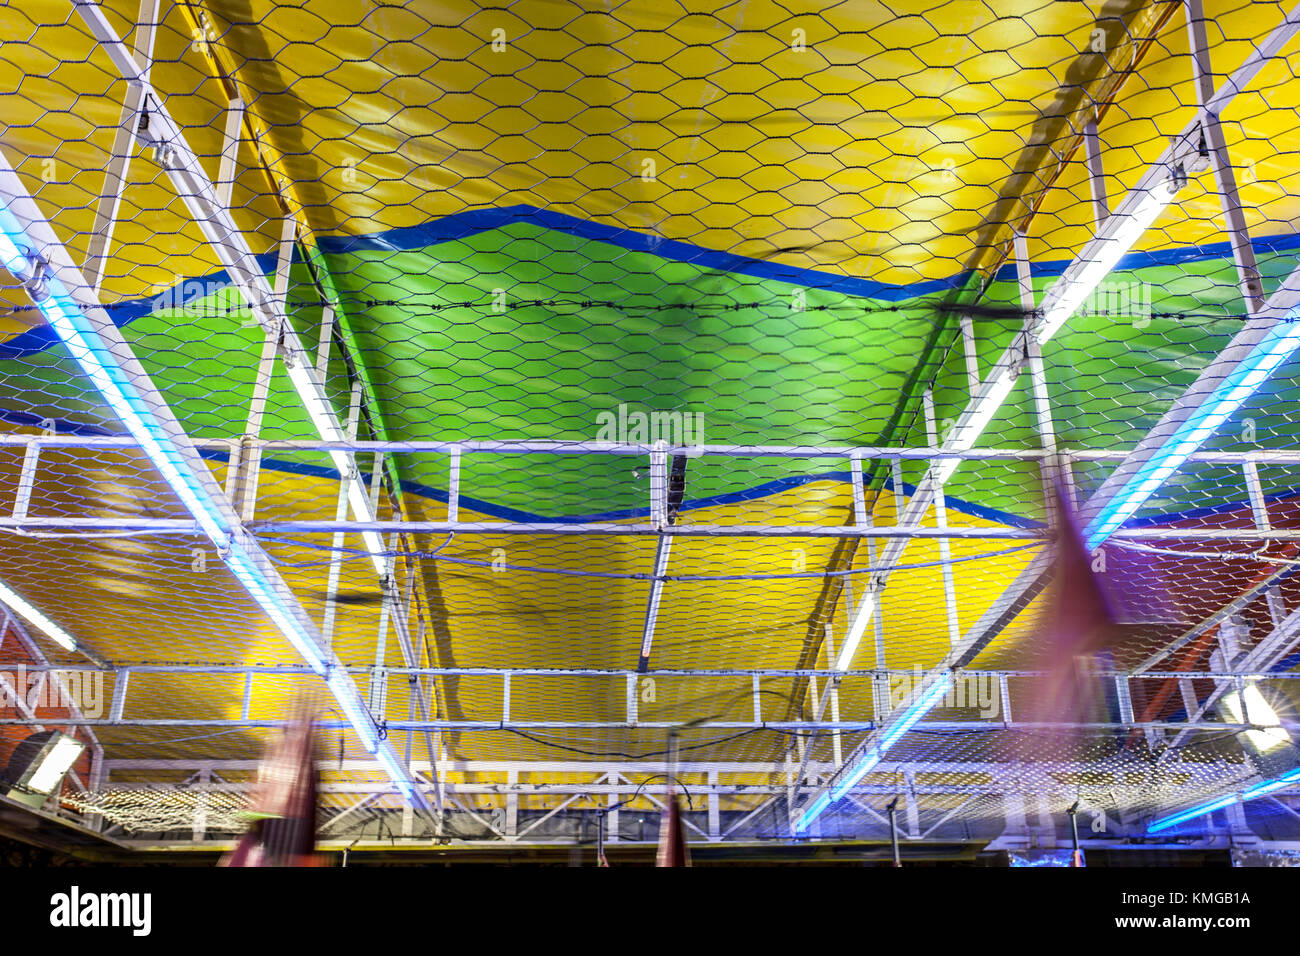 Bumper cars ceiling attraction. Low motion shot - Stock Image